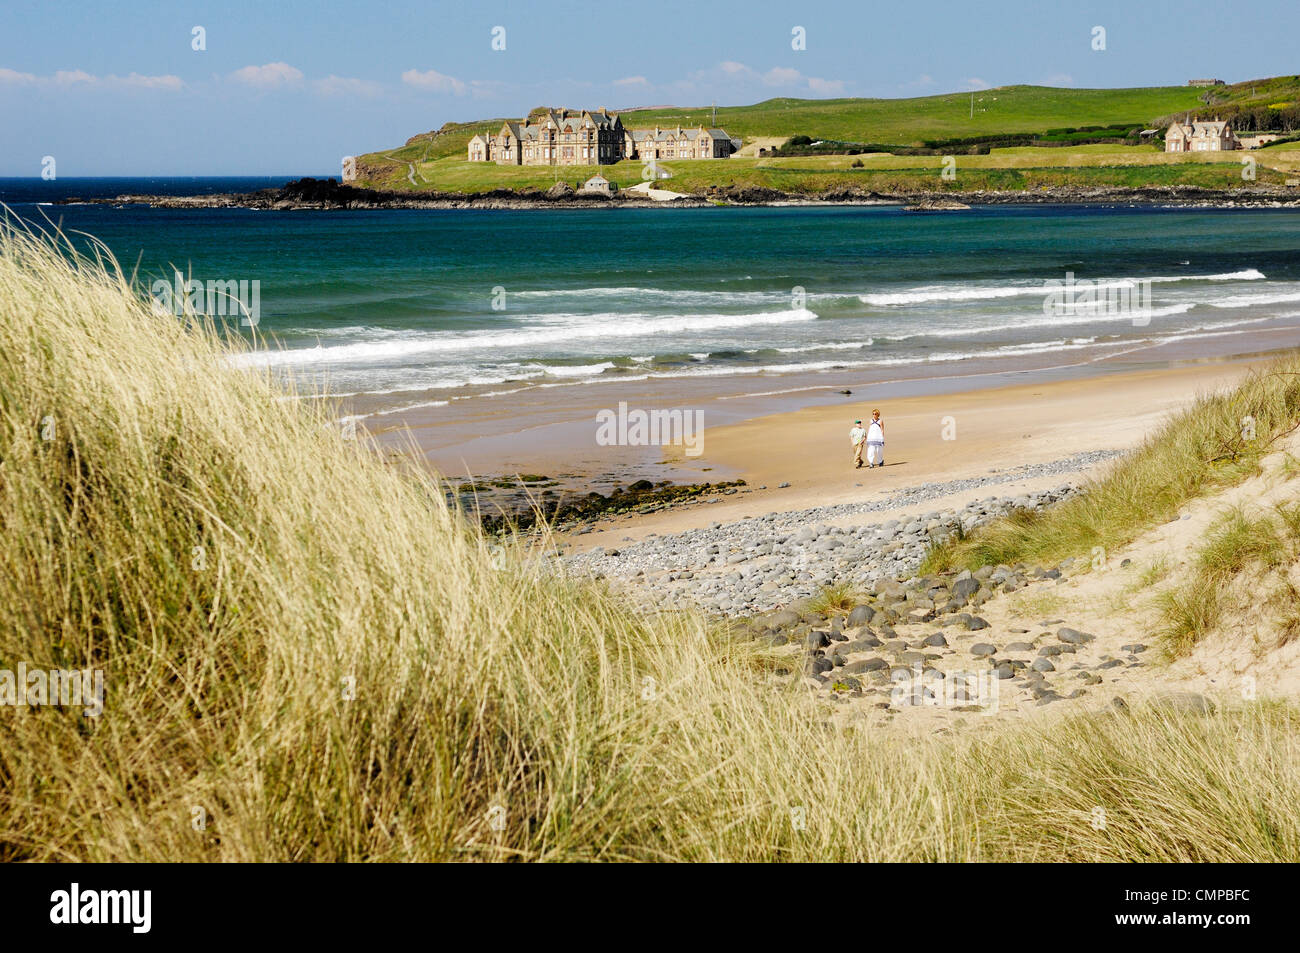 Woman and boy walking on Runkerry Strand seen from Runkerry Trail, Portballintrae near Bushmills , Northern Ireland - Stock Image